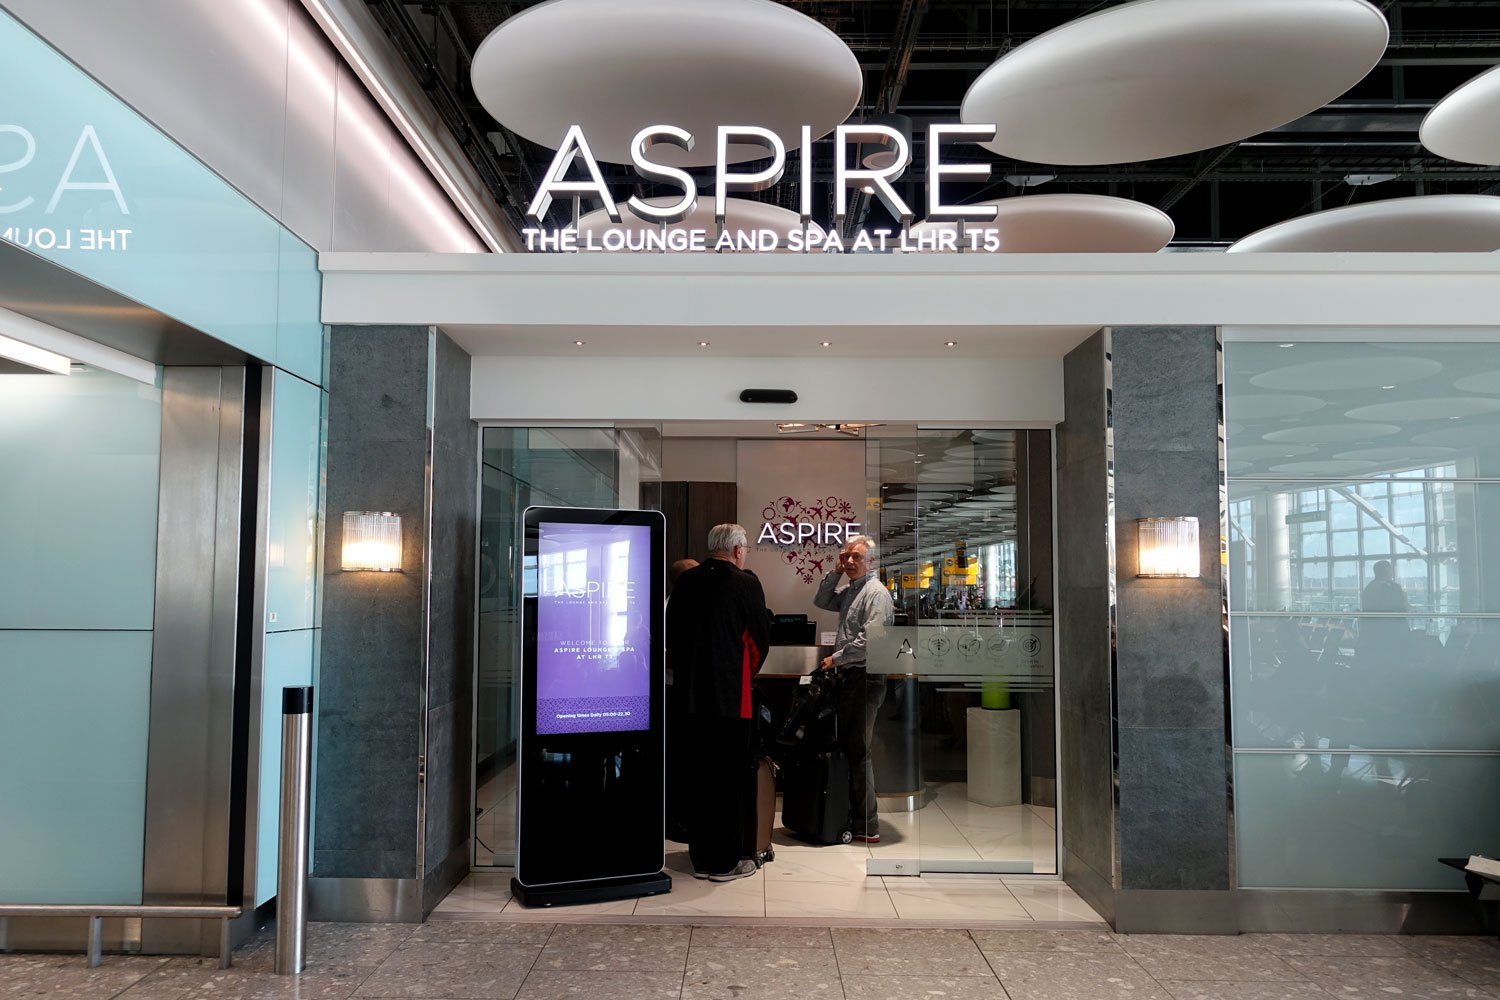 aspire lounge spa heathrow london entrance